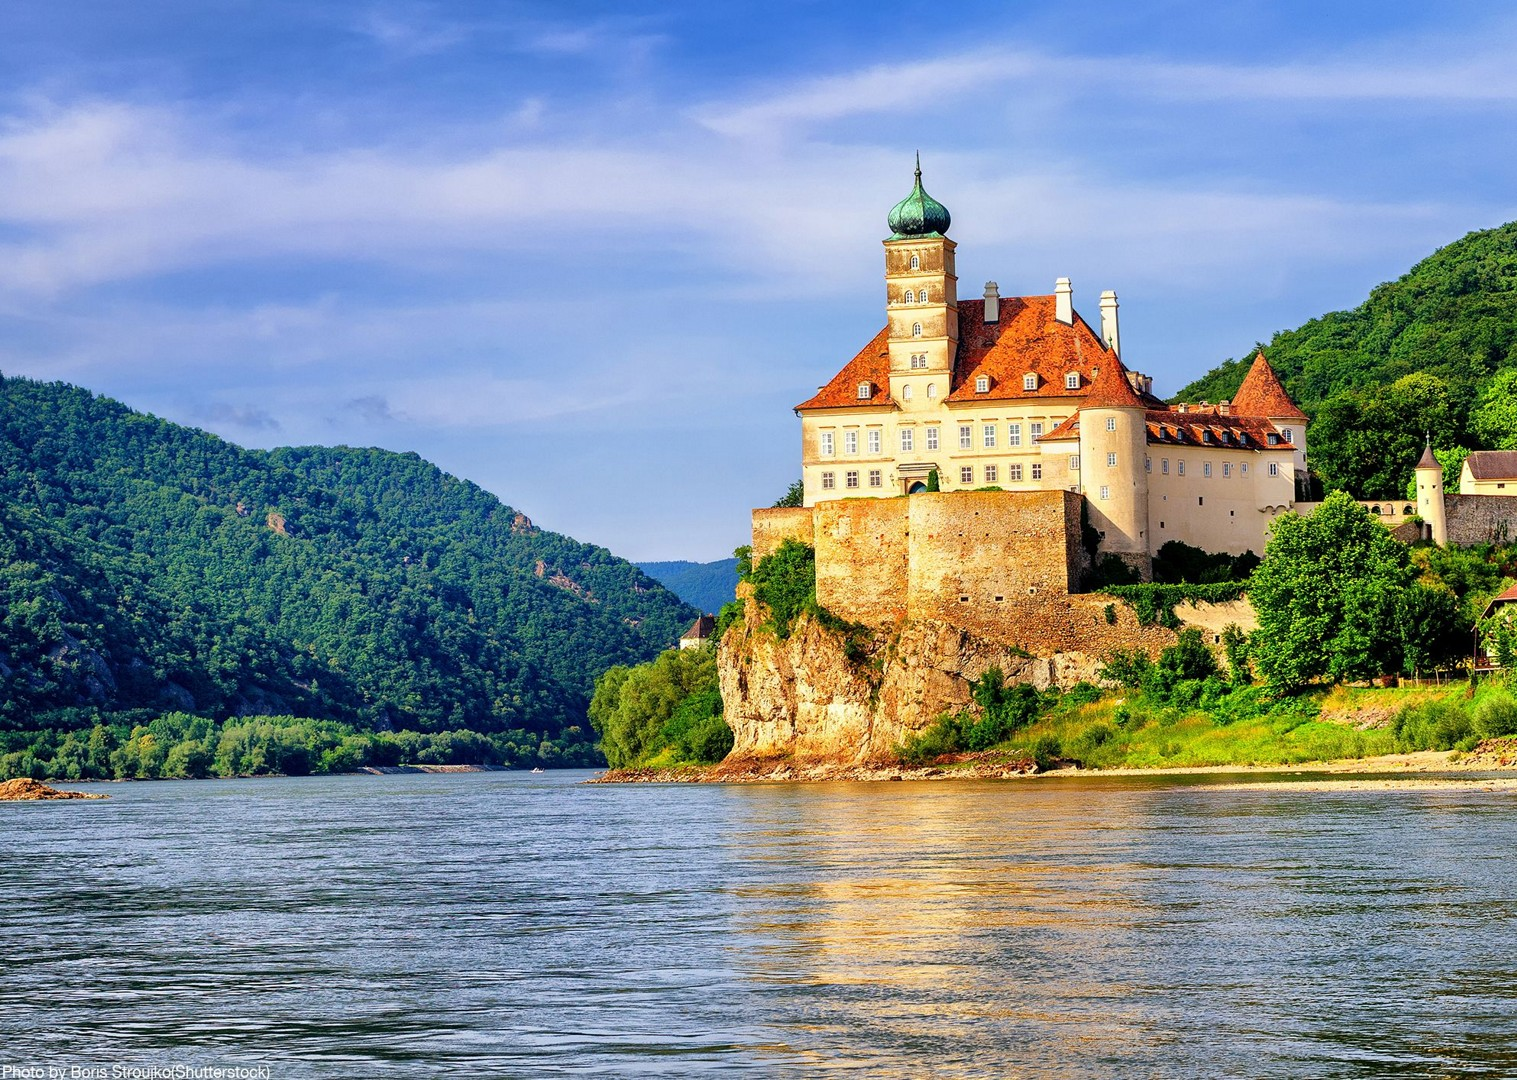 schonbuehel-castle-danube-cycle-path-austria-family-tour-saddle-skedaddle.jpg - Germany and Austria - The Danube Cyclepath (8 Days) - Self-Guided Leisure Cycling Holiday - Leisure Cycling